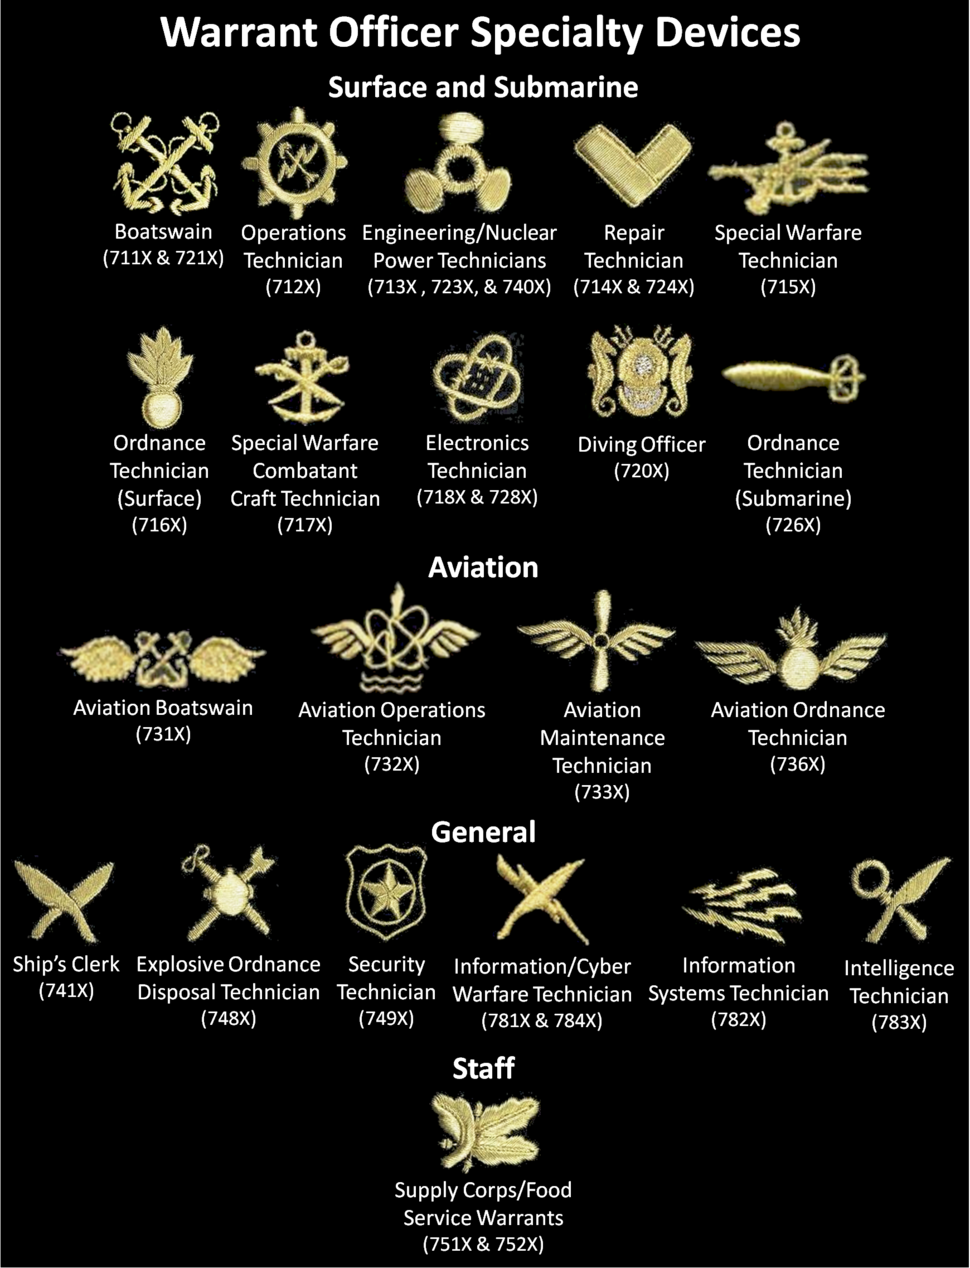 USN Chief Warrant Officer Specialty Devices